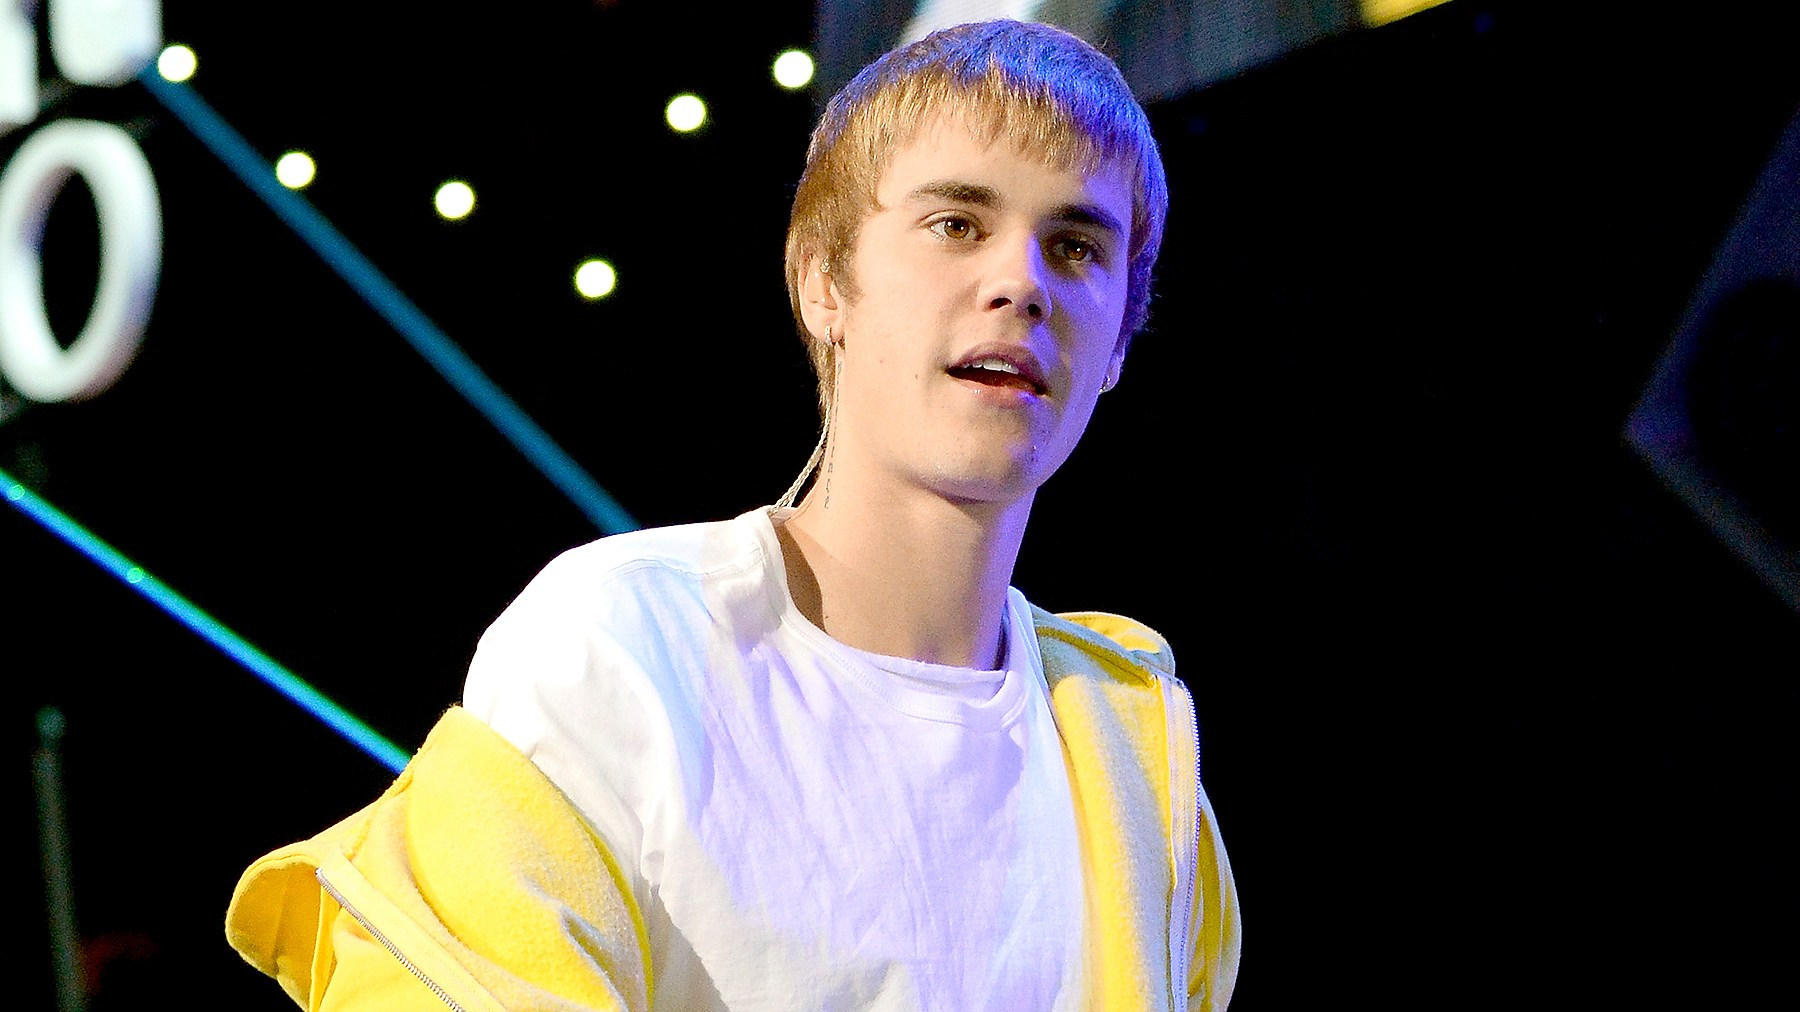 Justin Bieber performs onstage during Z100's Jingle Ball 2016 at Madison Square Garden on December 9, 2016 in New York, New York.